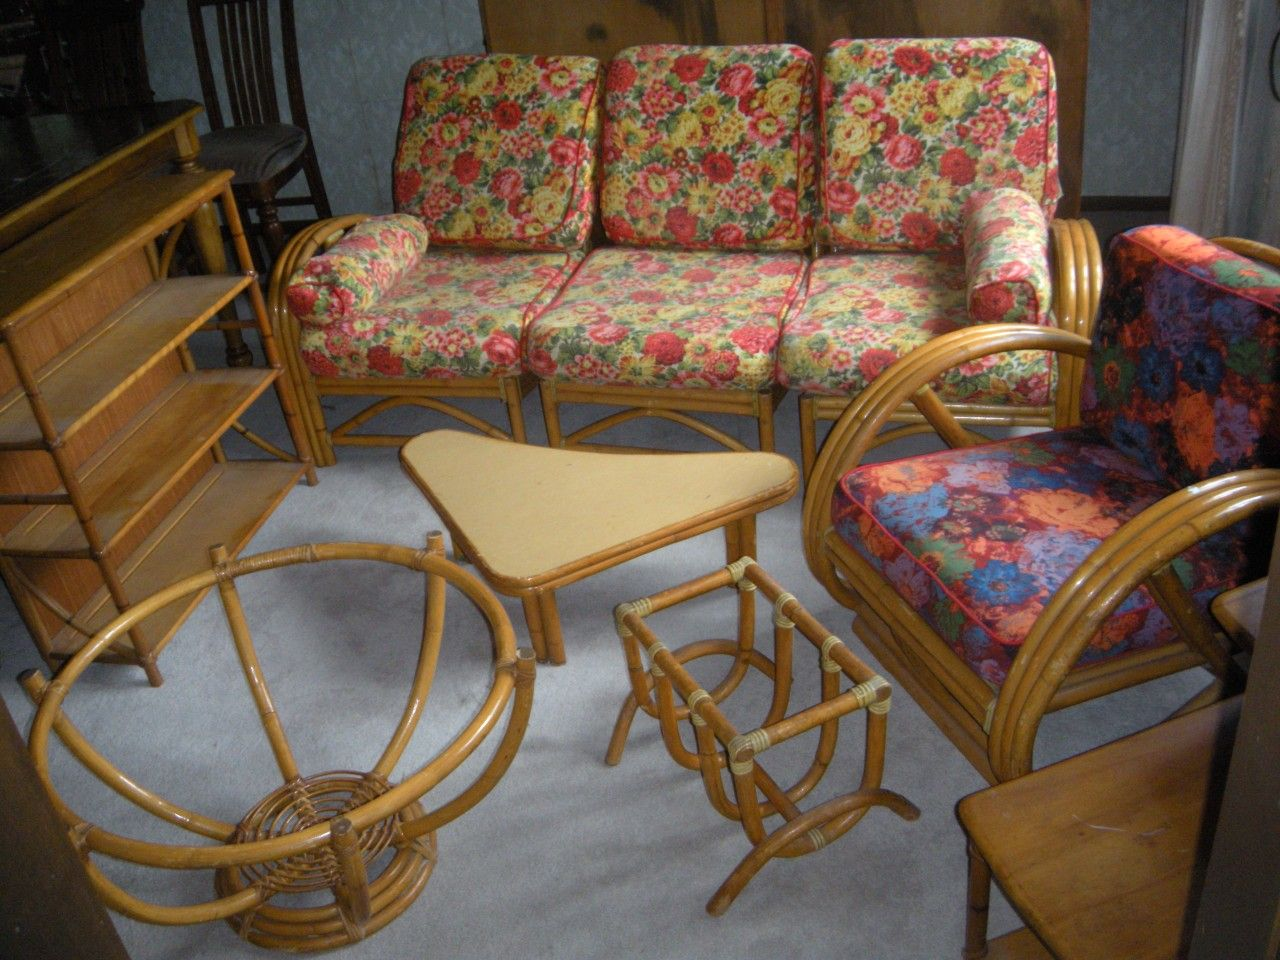 just chairs and tables zero gravity chair gander mountain i grew up with a set of bamboo furniture like this